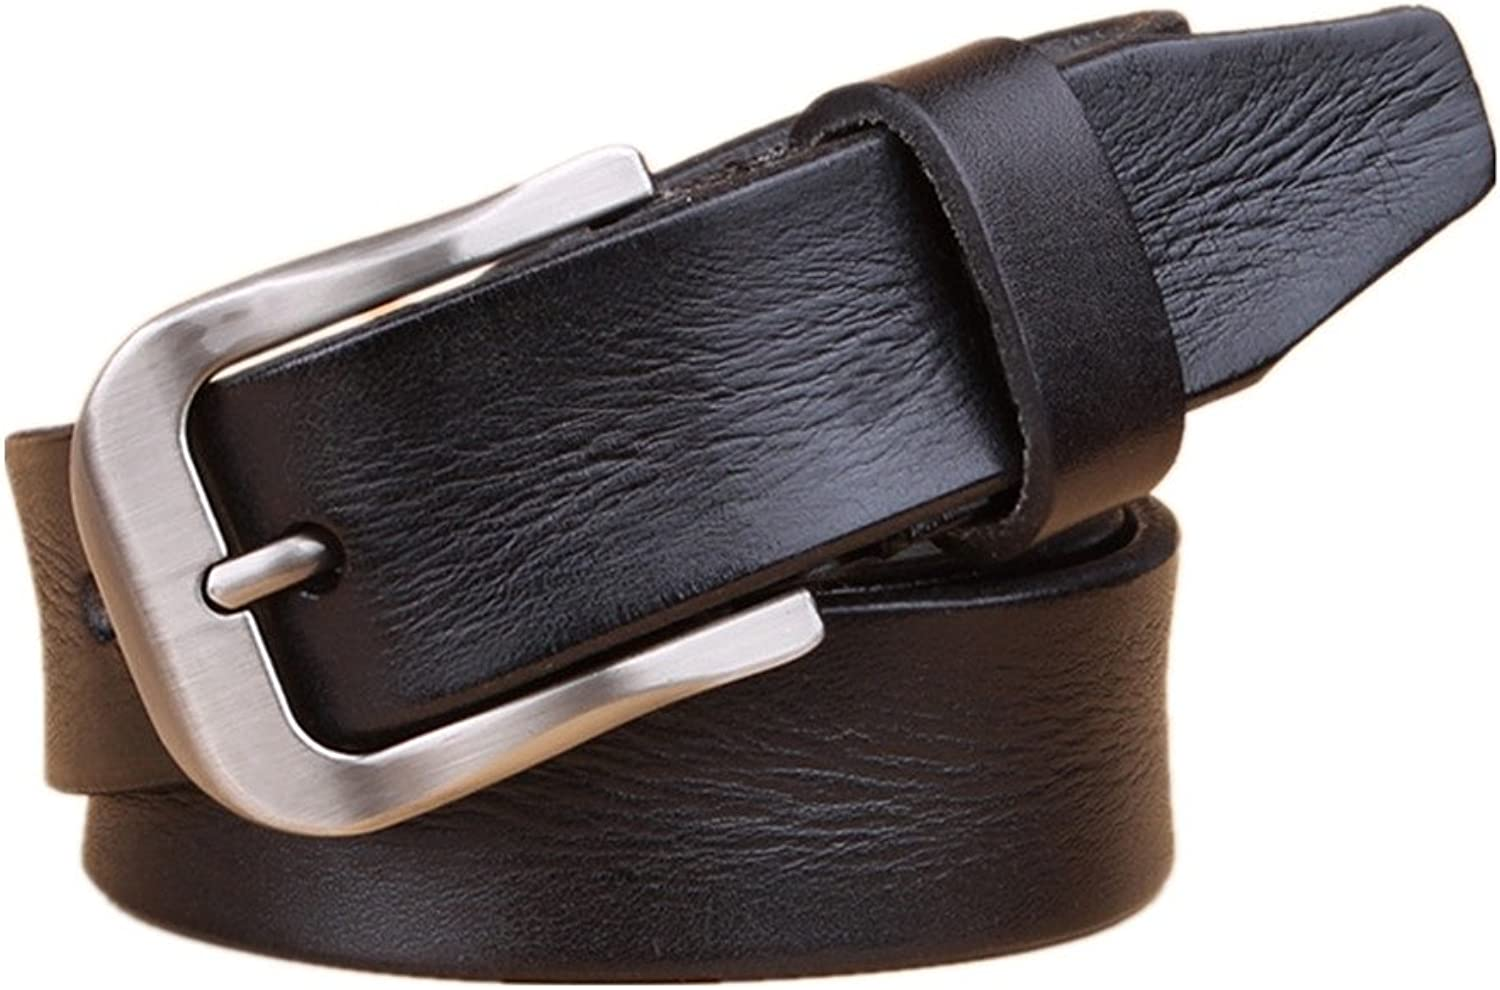 Women's Belt Genuine Cowhide Leather Belt Vintage Casual Belts for Jeans, (color   Black, Size   115cm)